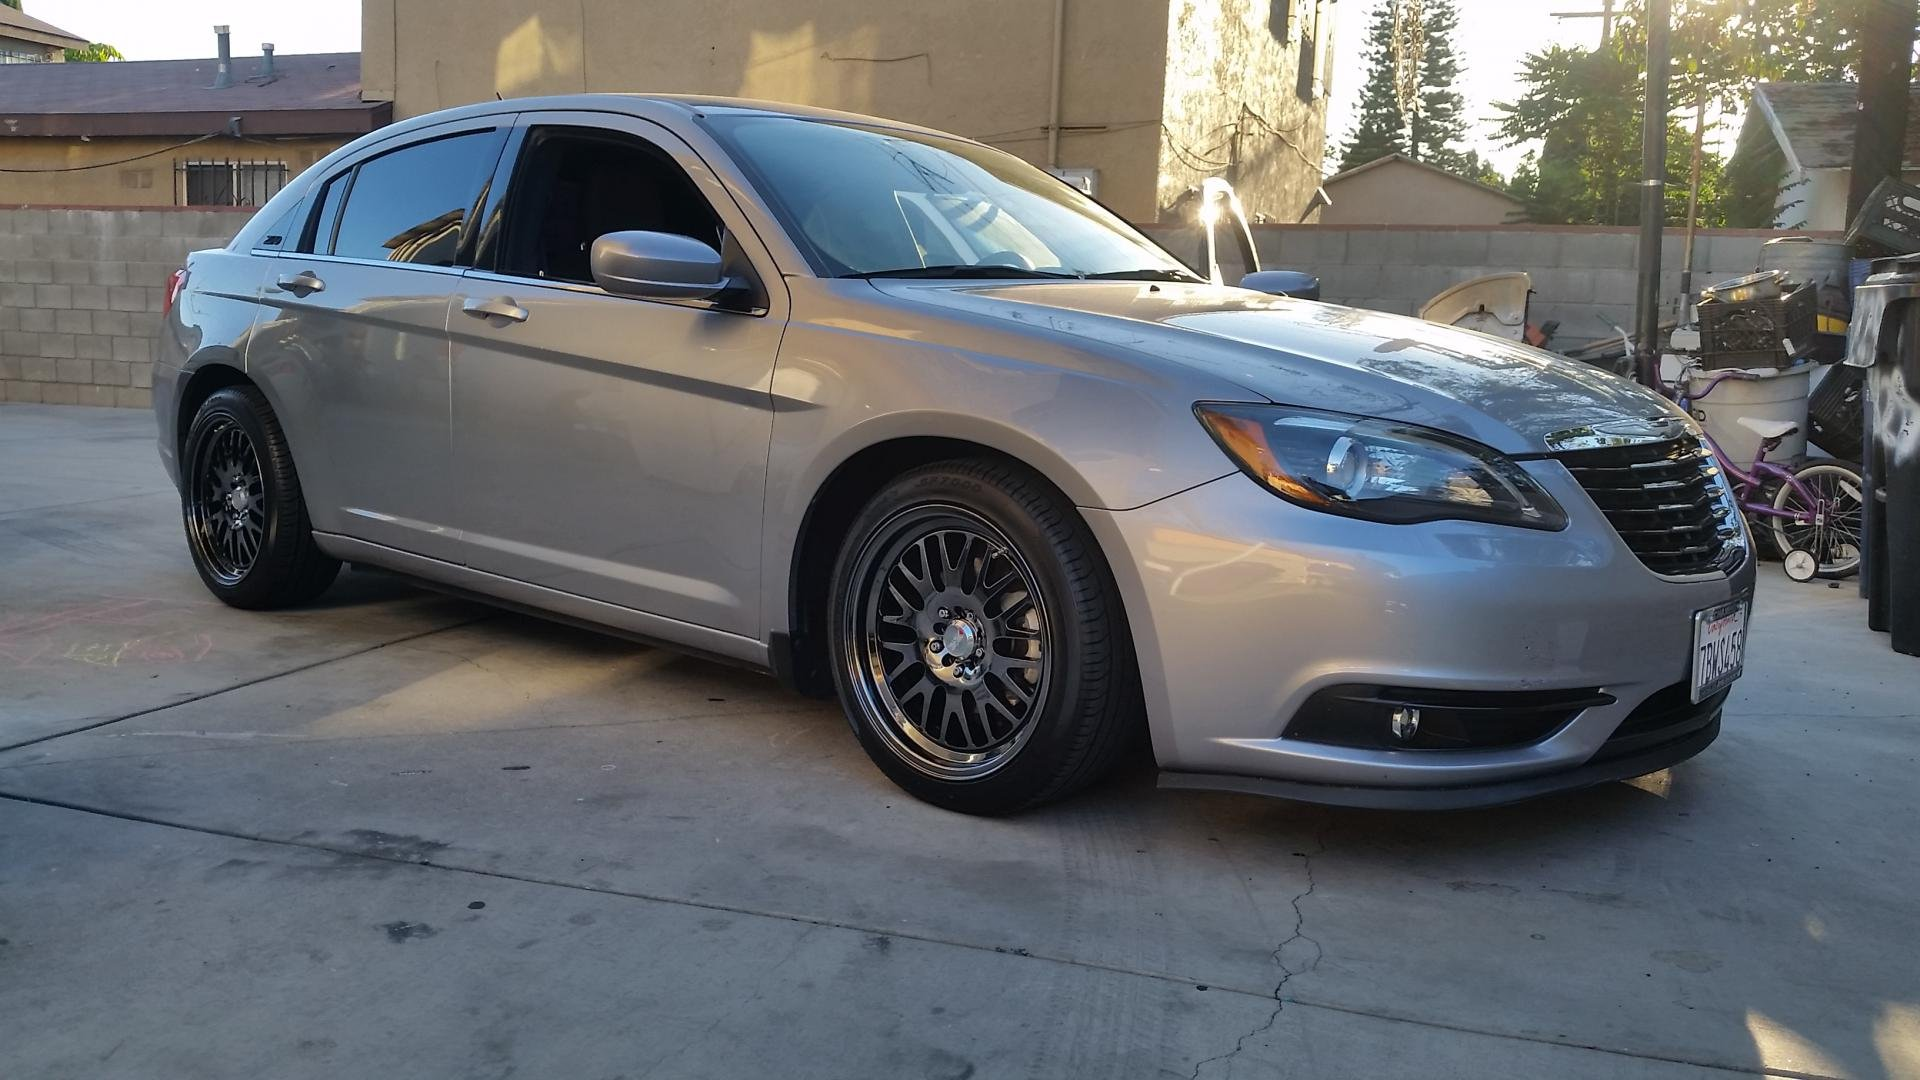 18x8 5 35 Offset All Around Just Thought I D Share My Wheels